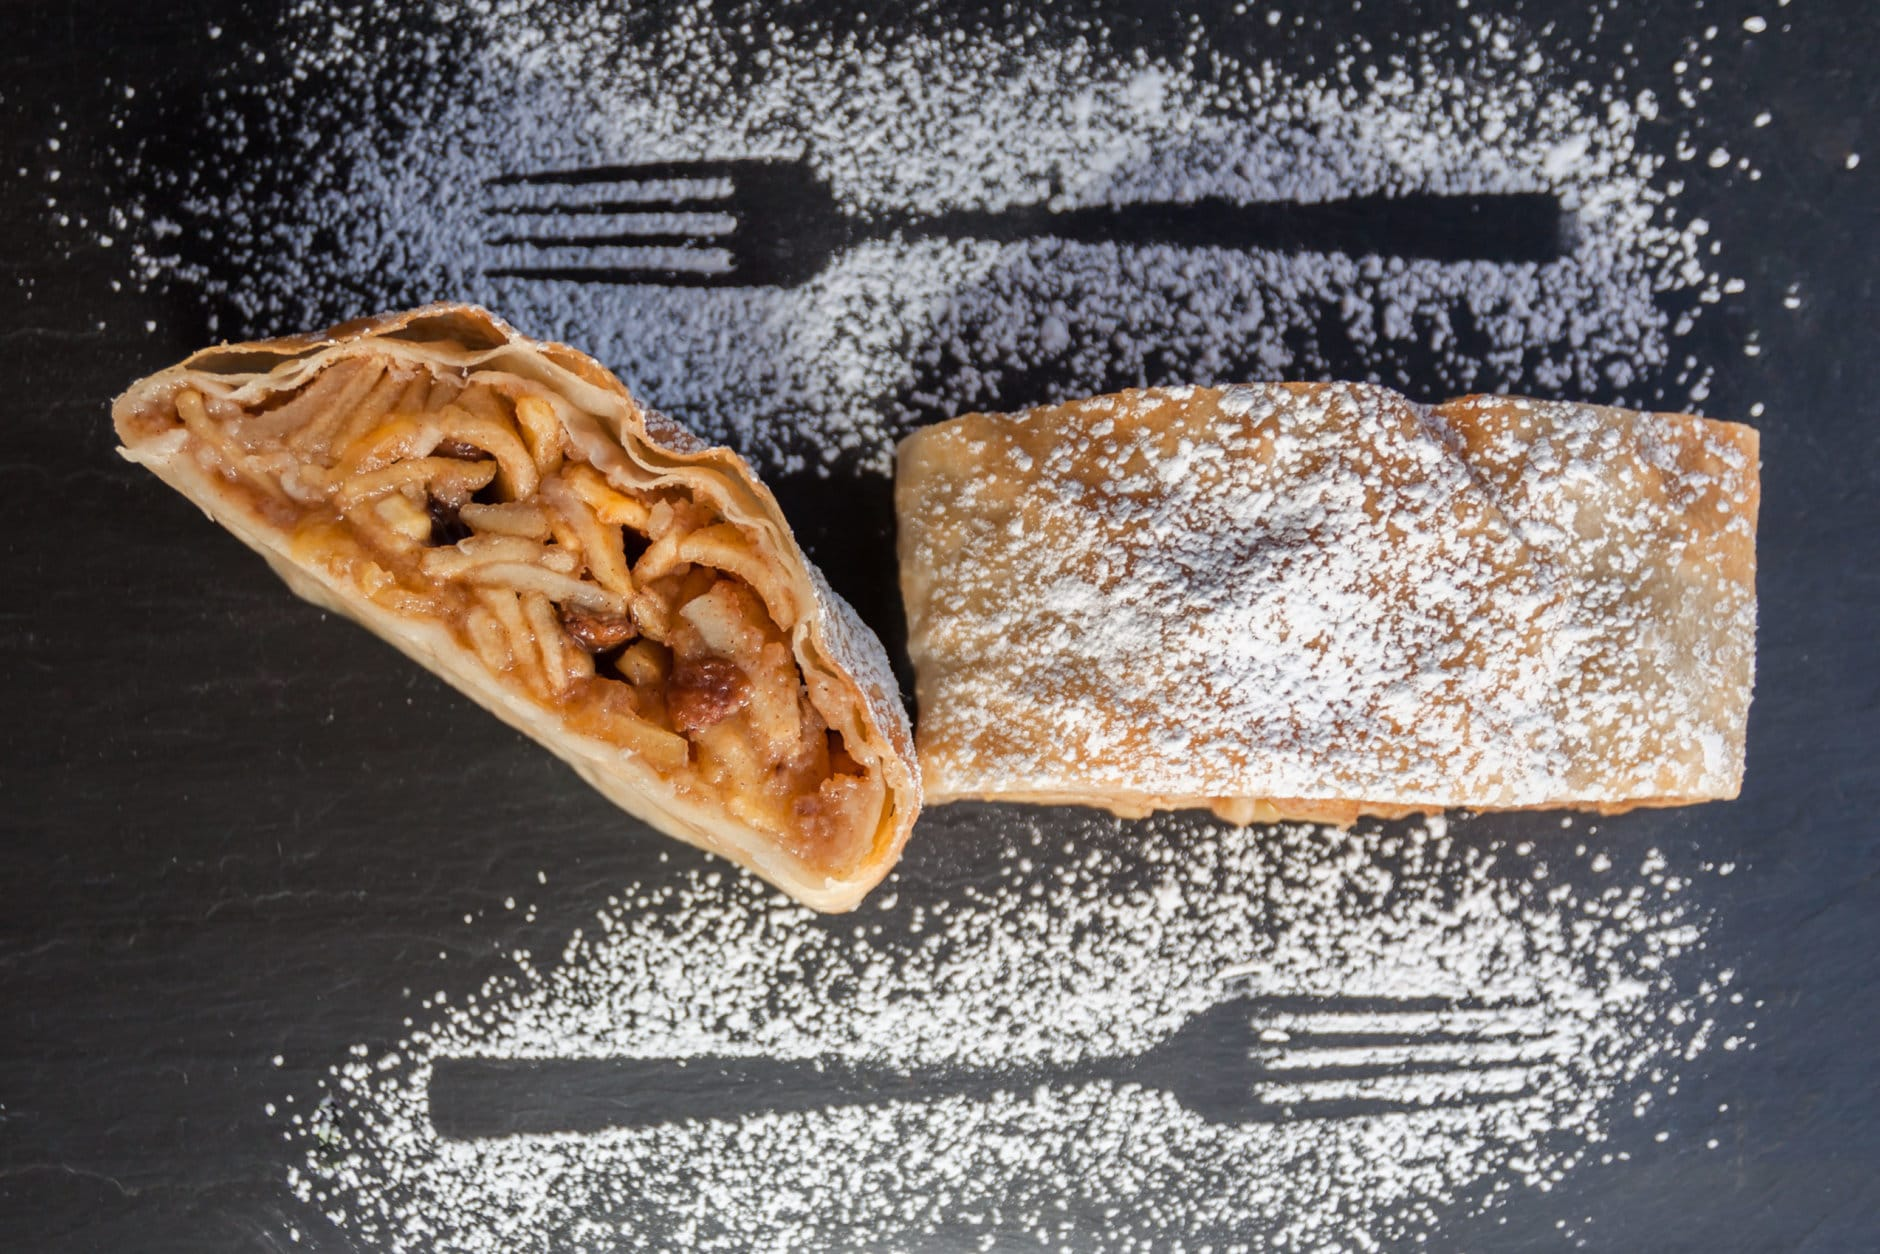 Little Austria's Helene Gallent works out of shared kitchen space, producing her signature strudels for nearly a dozen farmers markets across the region. (Courtesy Little Austria)